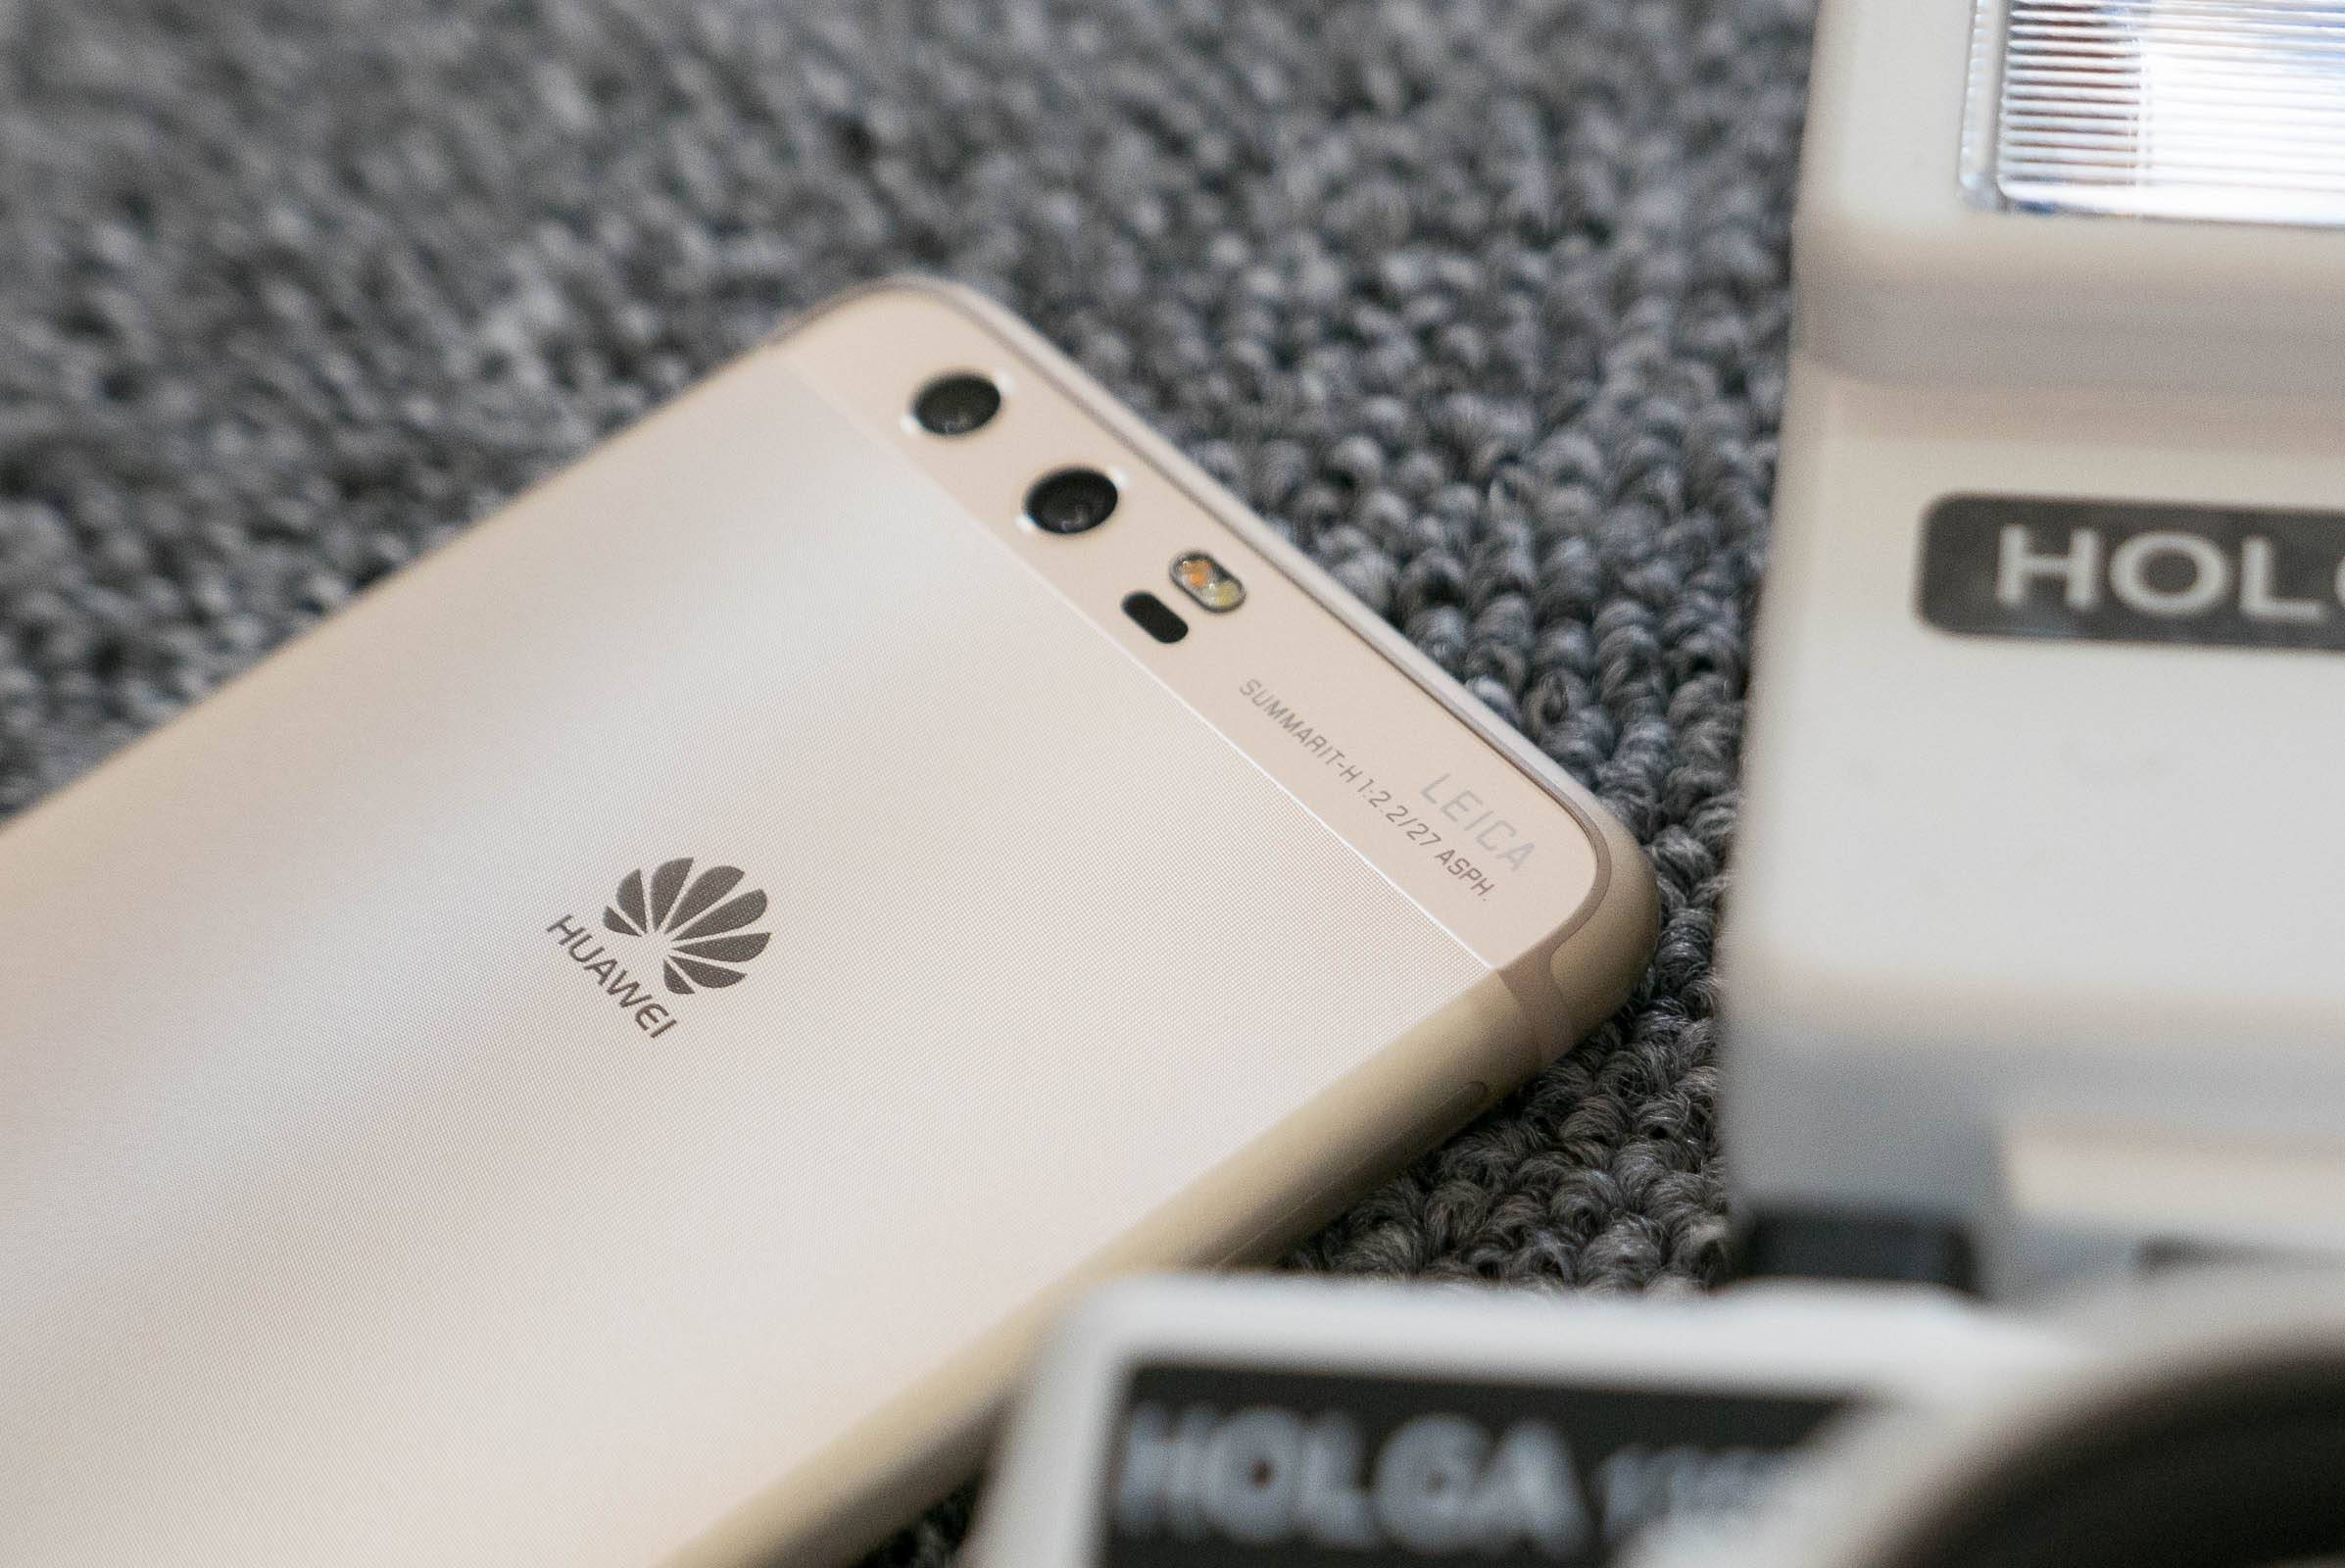 huawei P10 gold version Photo By Hao Ying-4